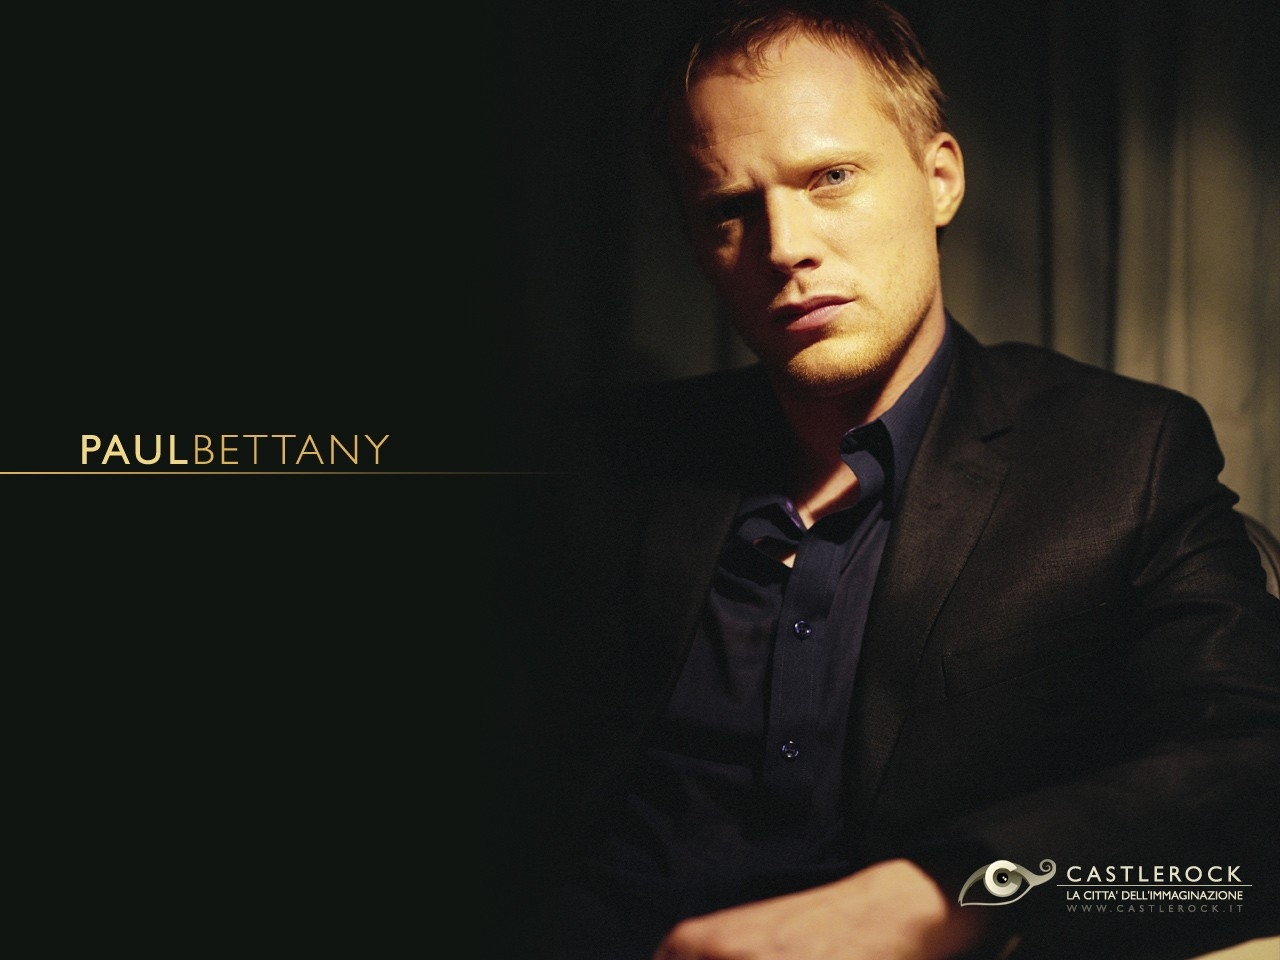 Wallpaper del fascinoso Paul Bettany